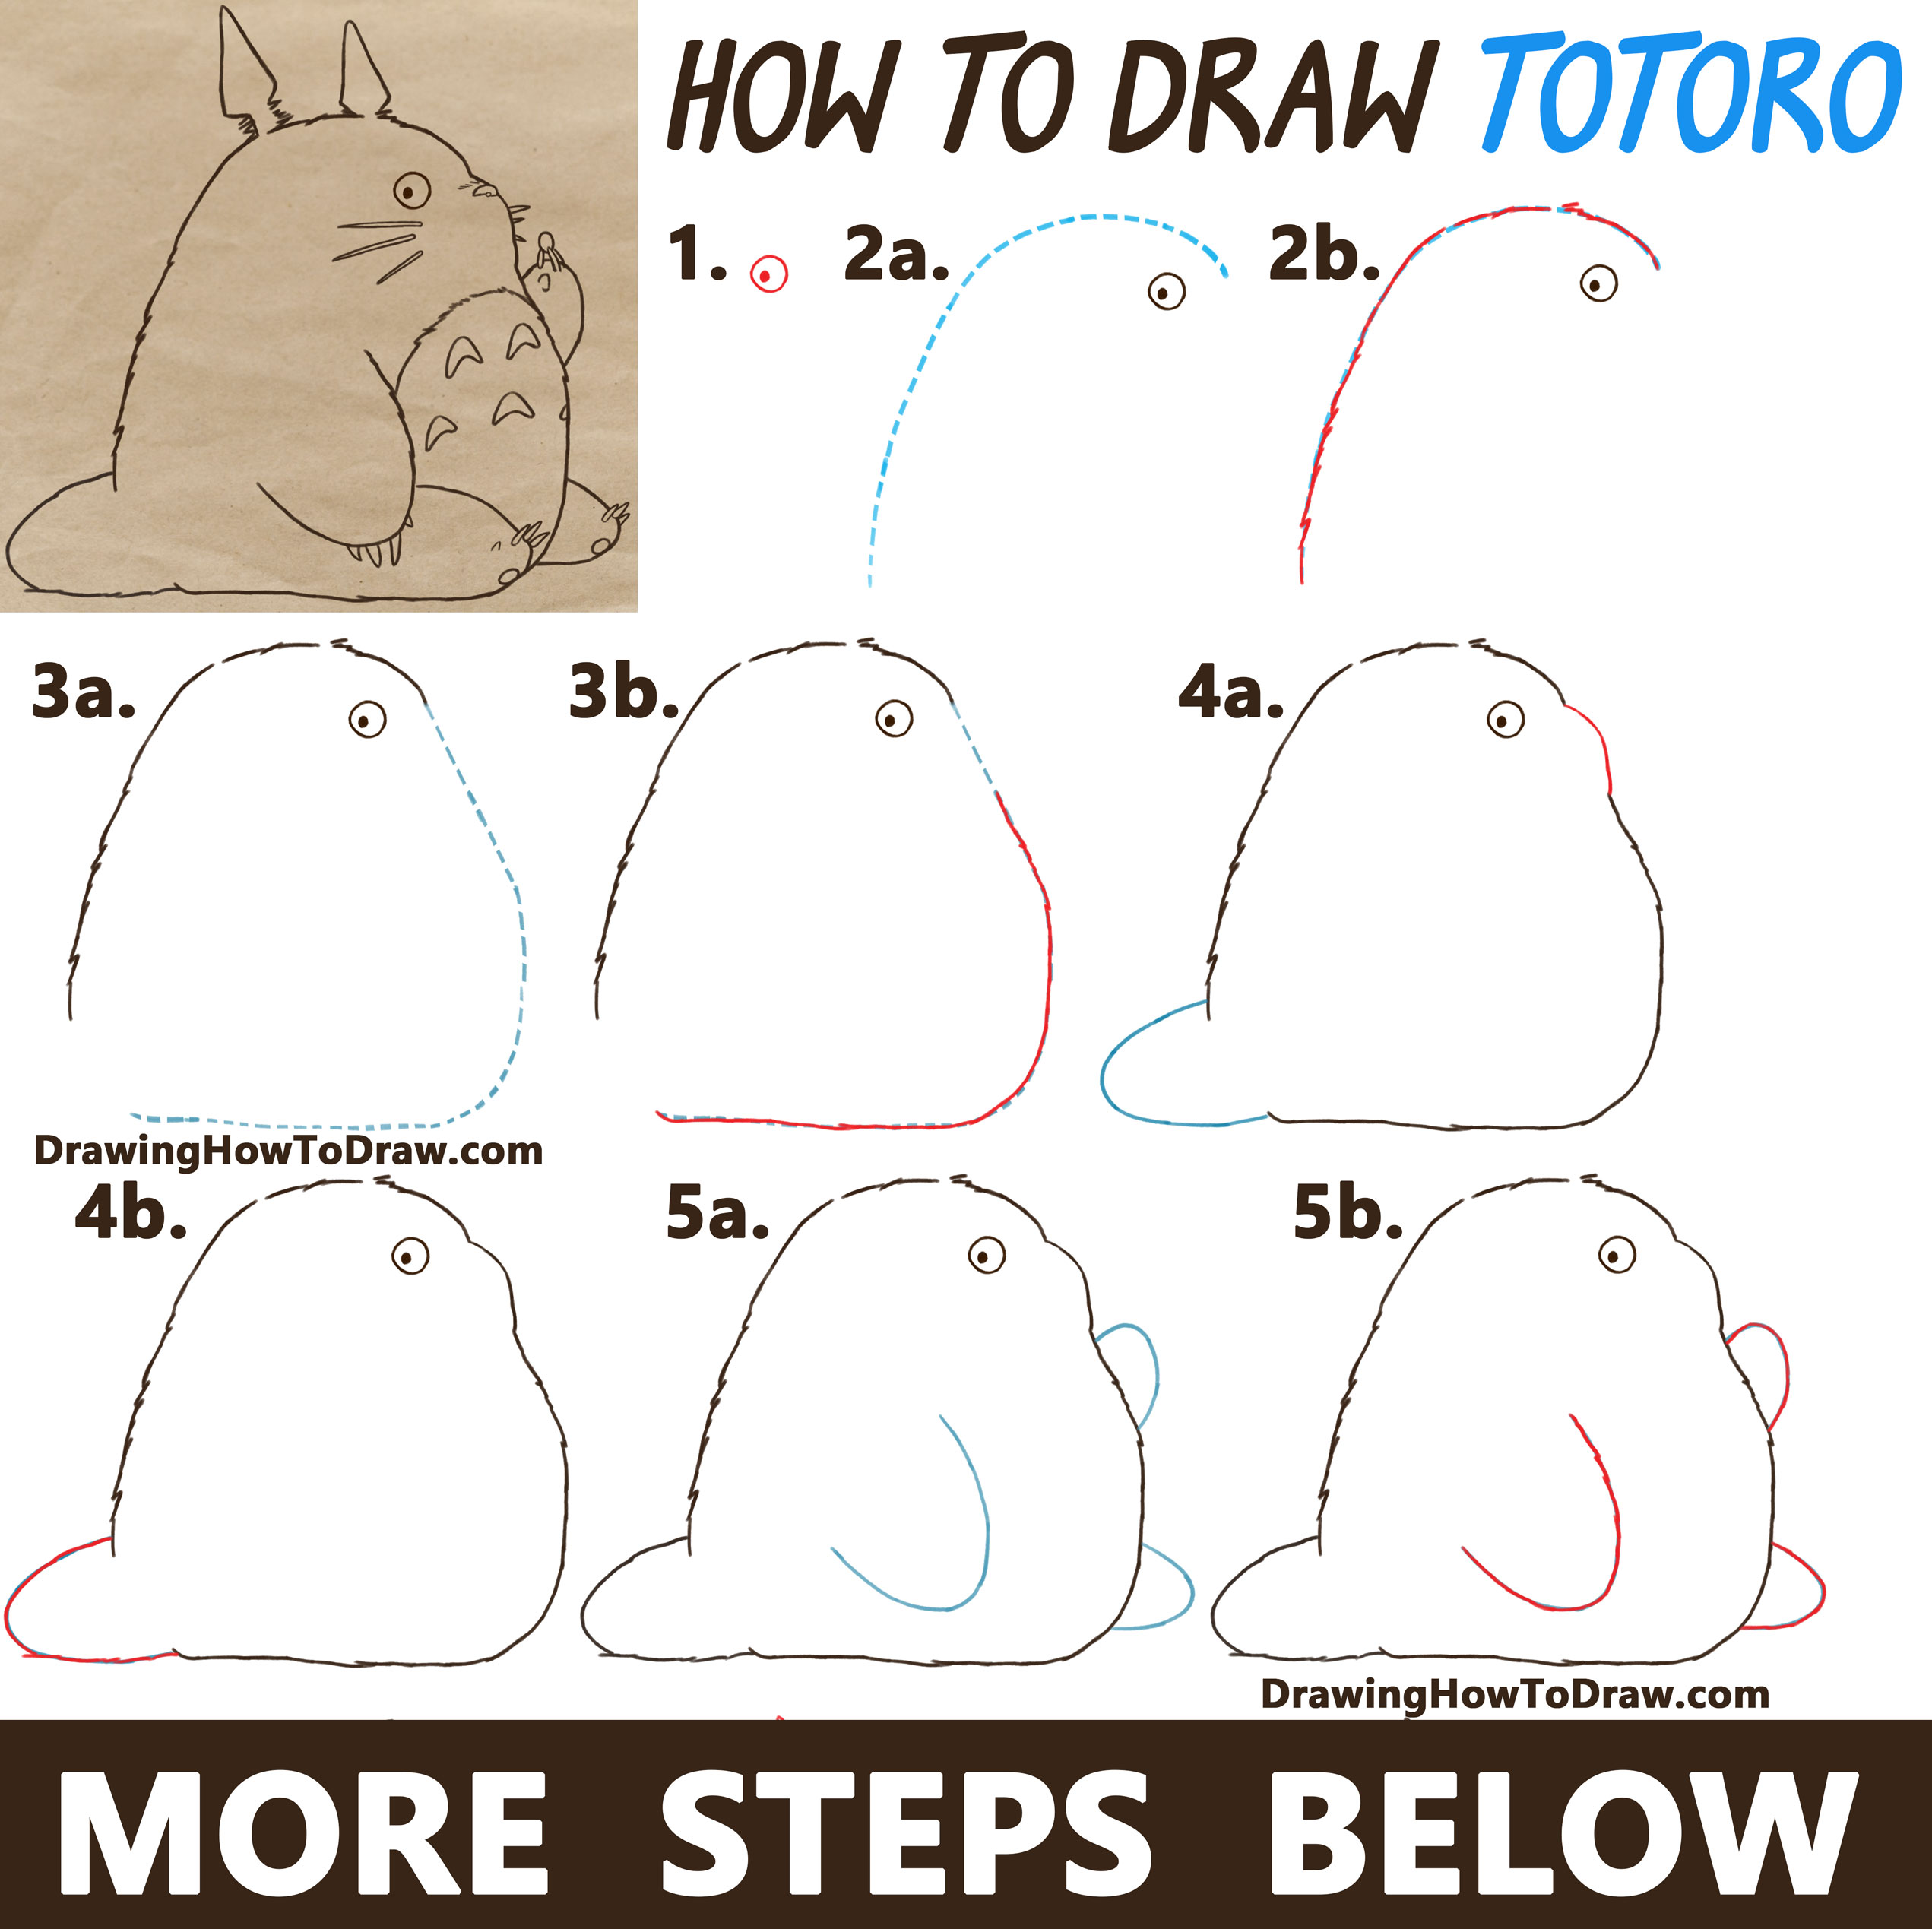 Learn How to Draw Totoro from My Neighbor Totoro - Easy Step by Step Drawing Tutorial (Animated by Studio Ghibli)